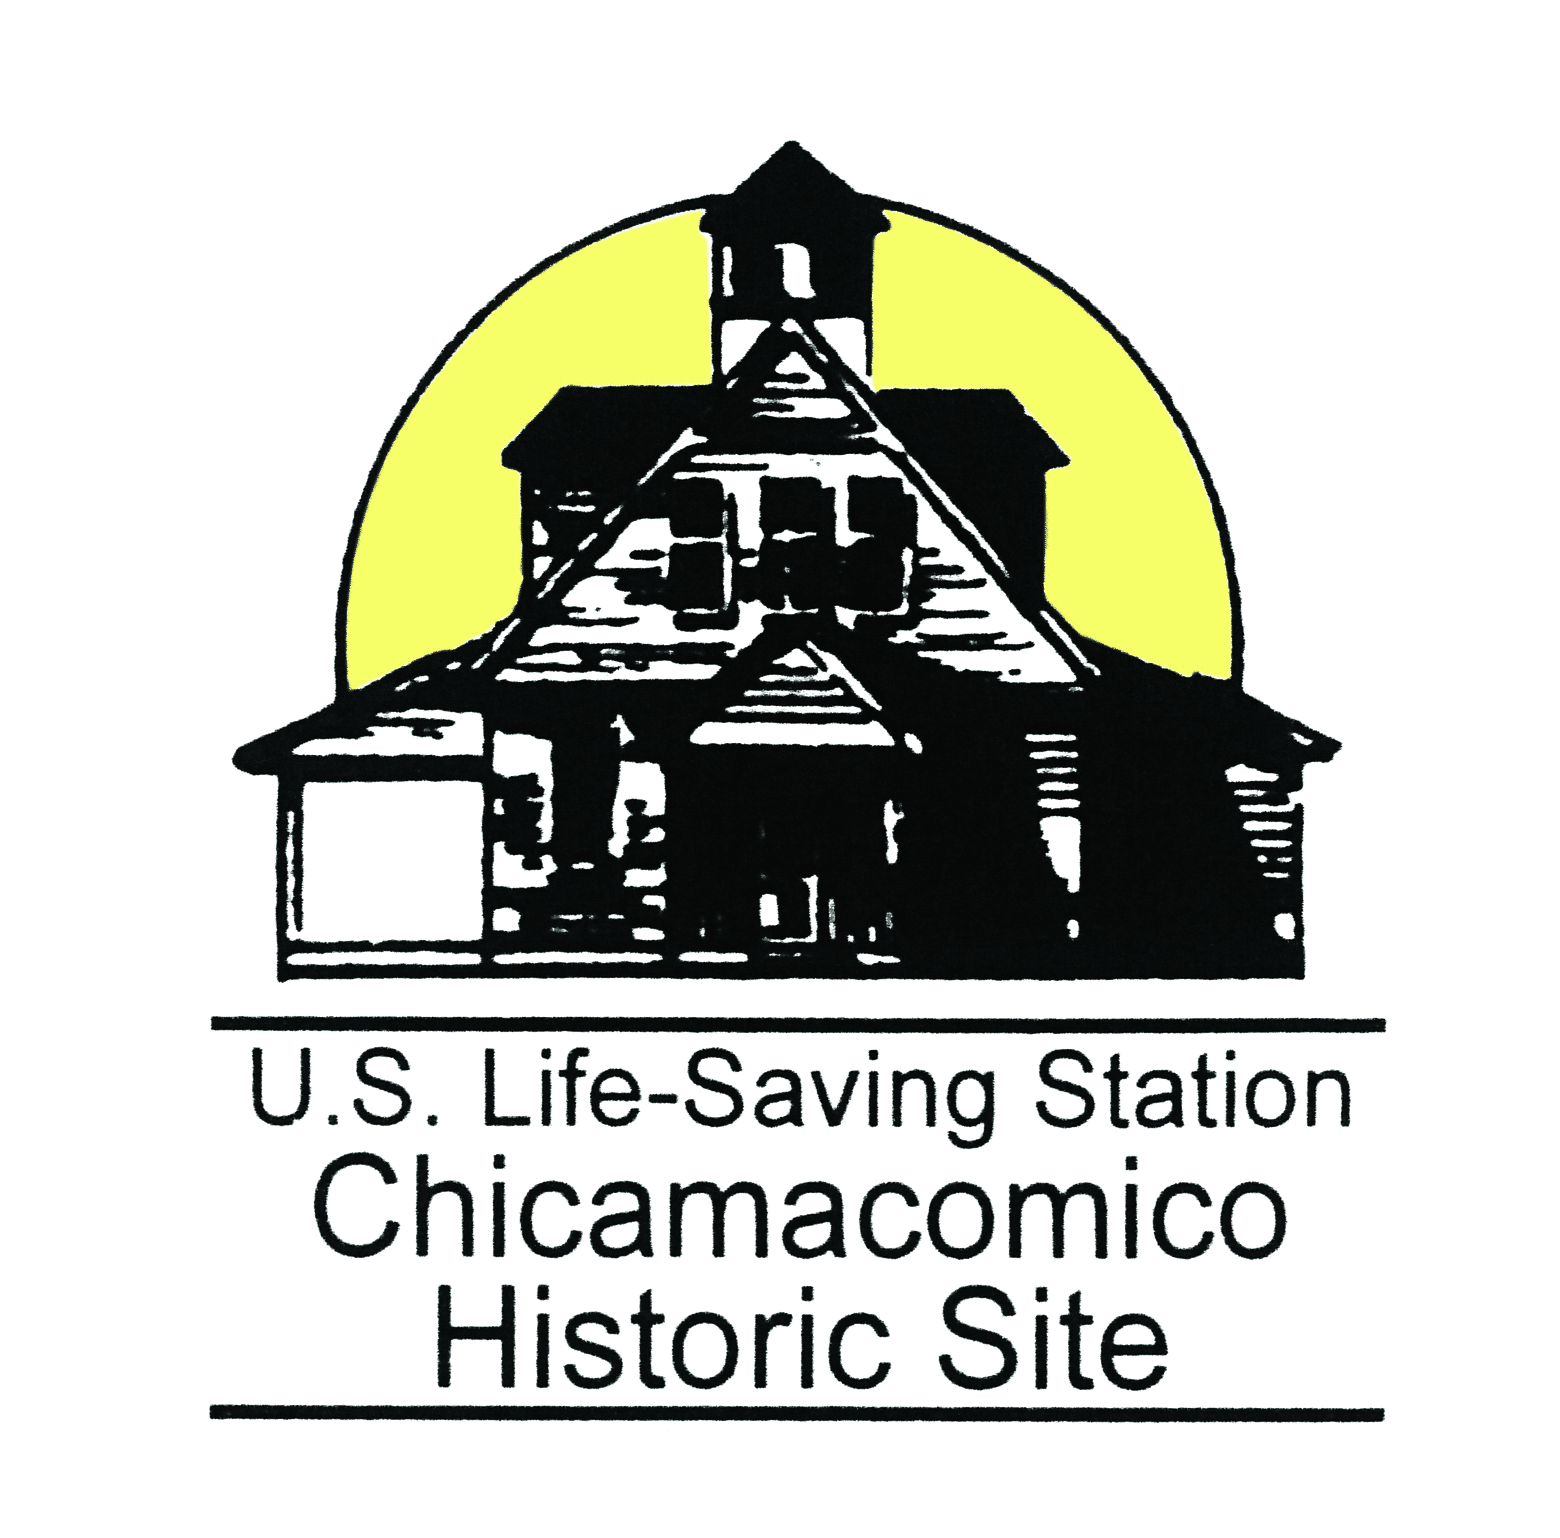 Chicamacomico website maintenance